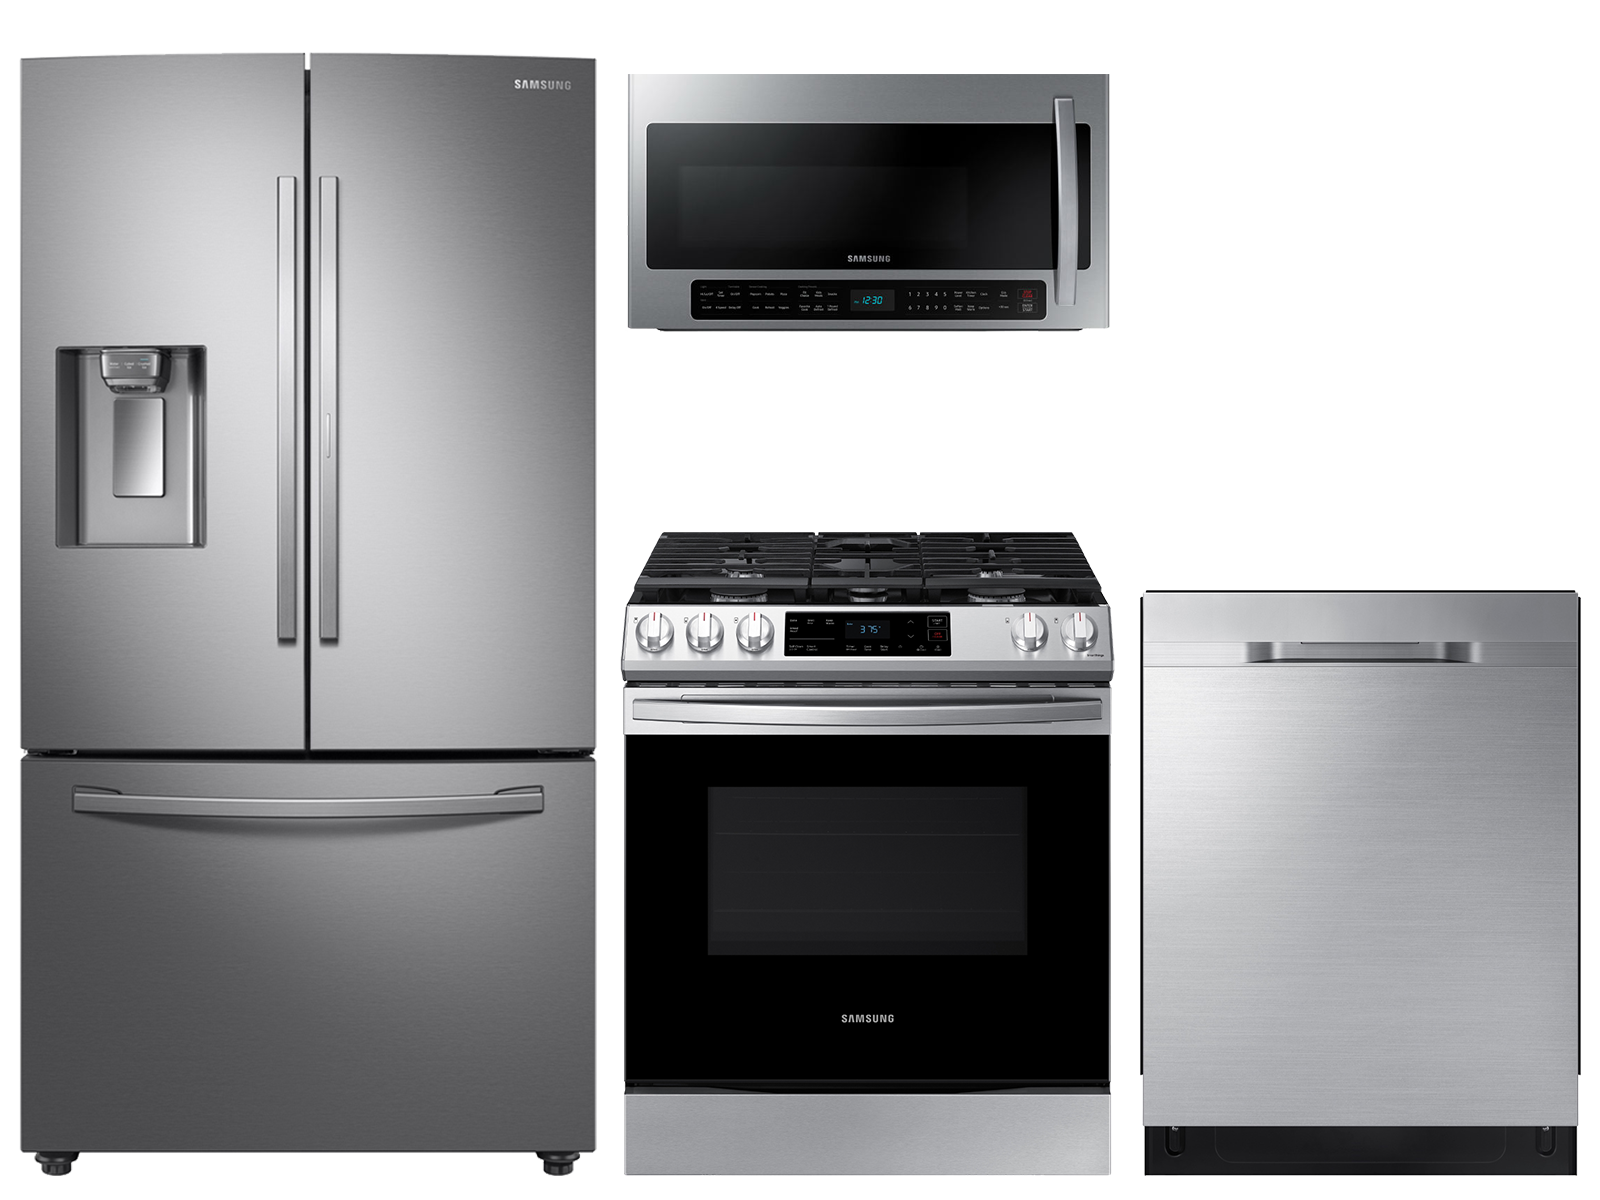 28 cu. ft. full depth 3-door refrigerator, gas range, 2.1 cu. ft. microwave and dishwasher package